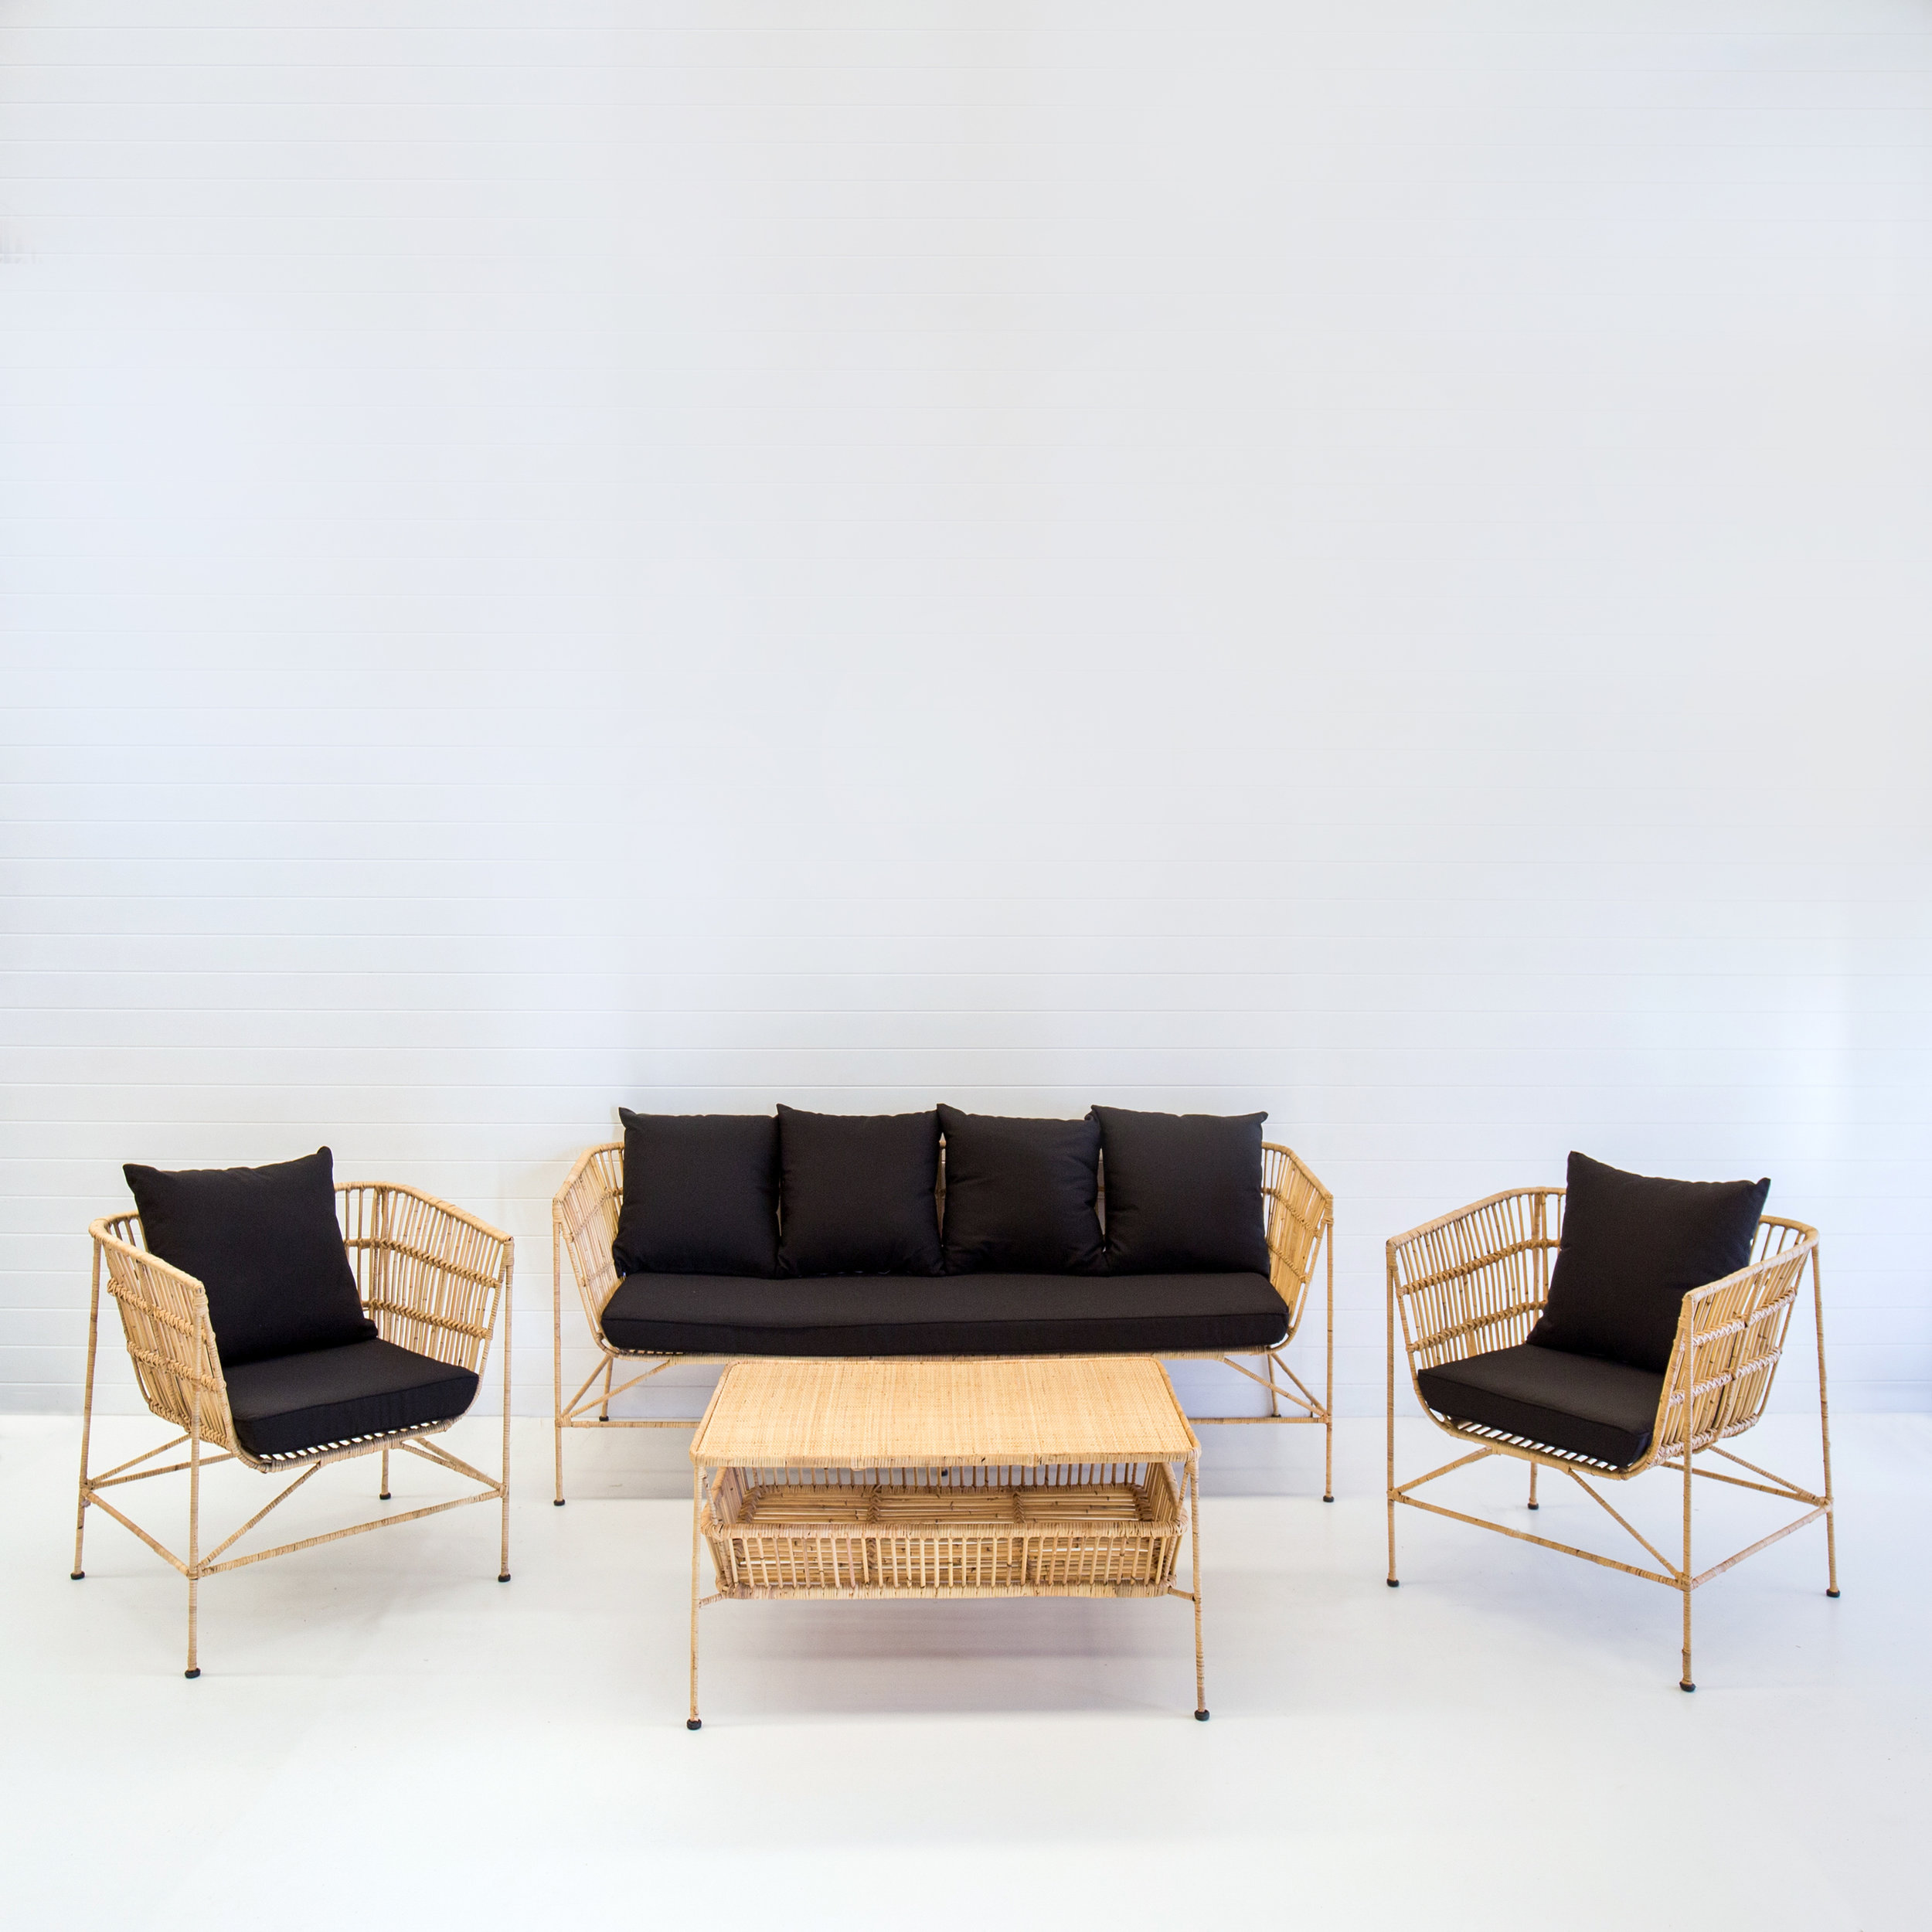 Indie natural sofa package with black cushions